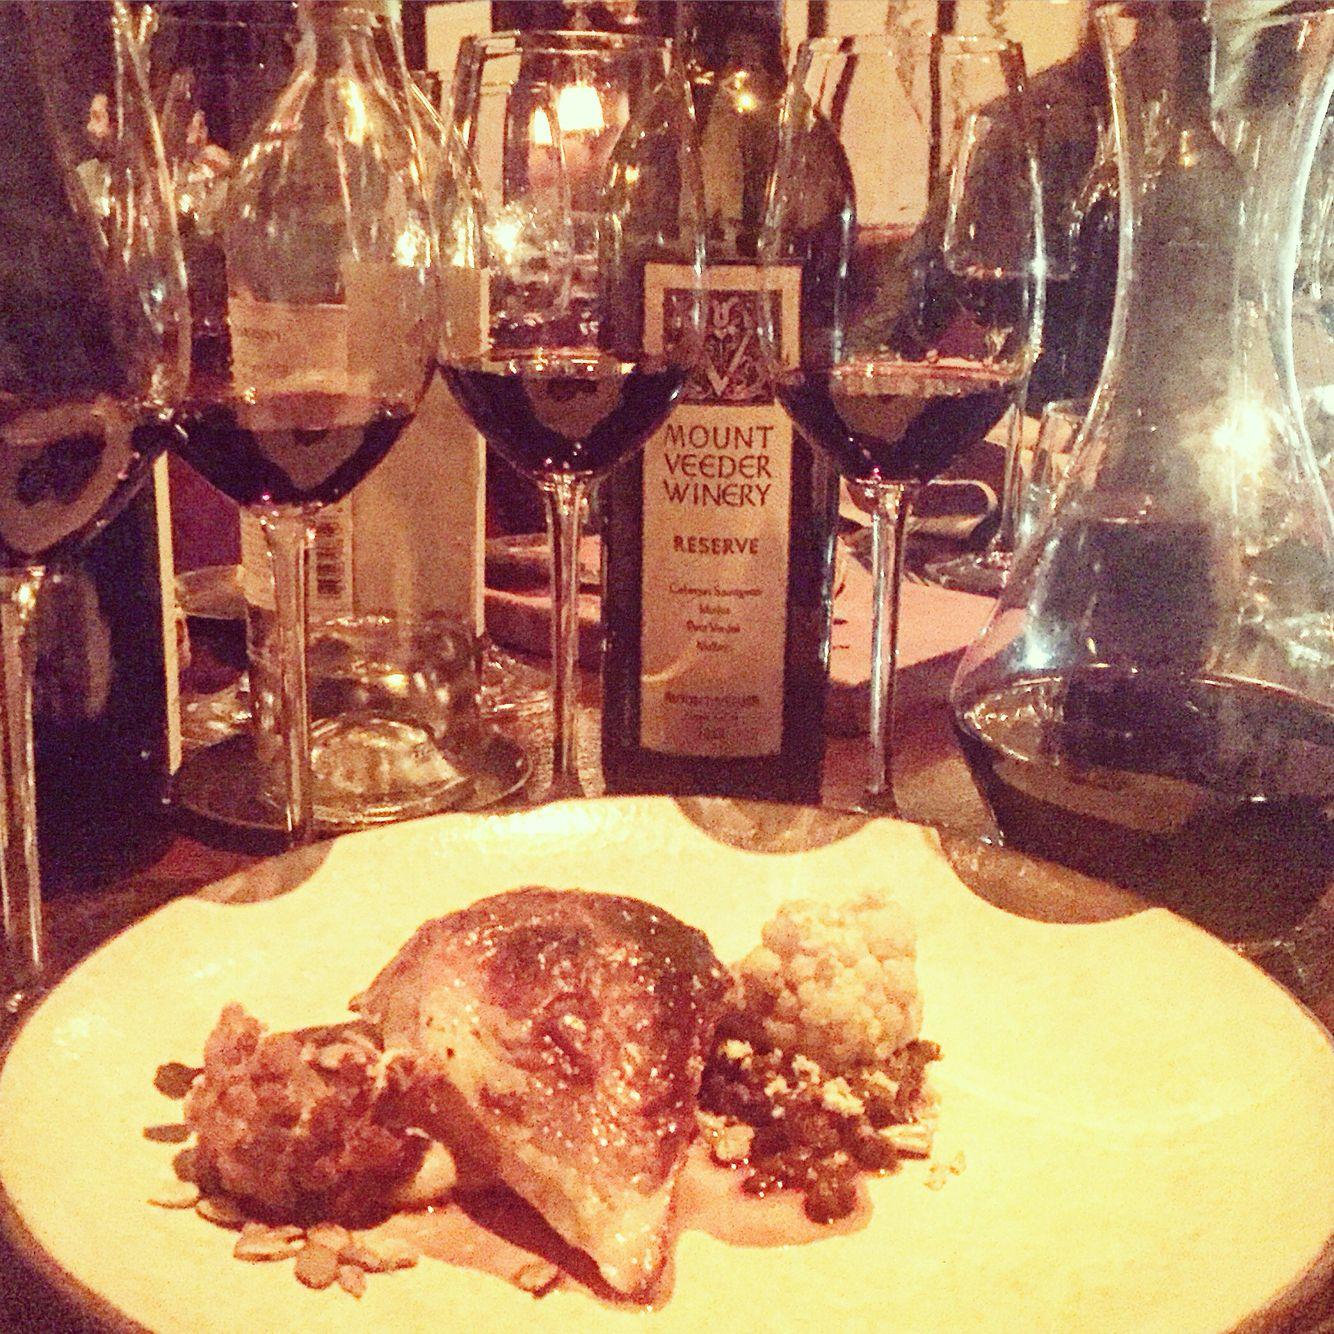 Mount Veeder And Nomad S Legendary Foie Gras Chicken Day Saved Wine Images Alcoholic Drinks Wine